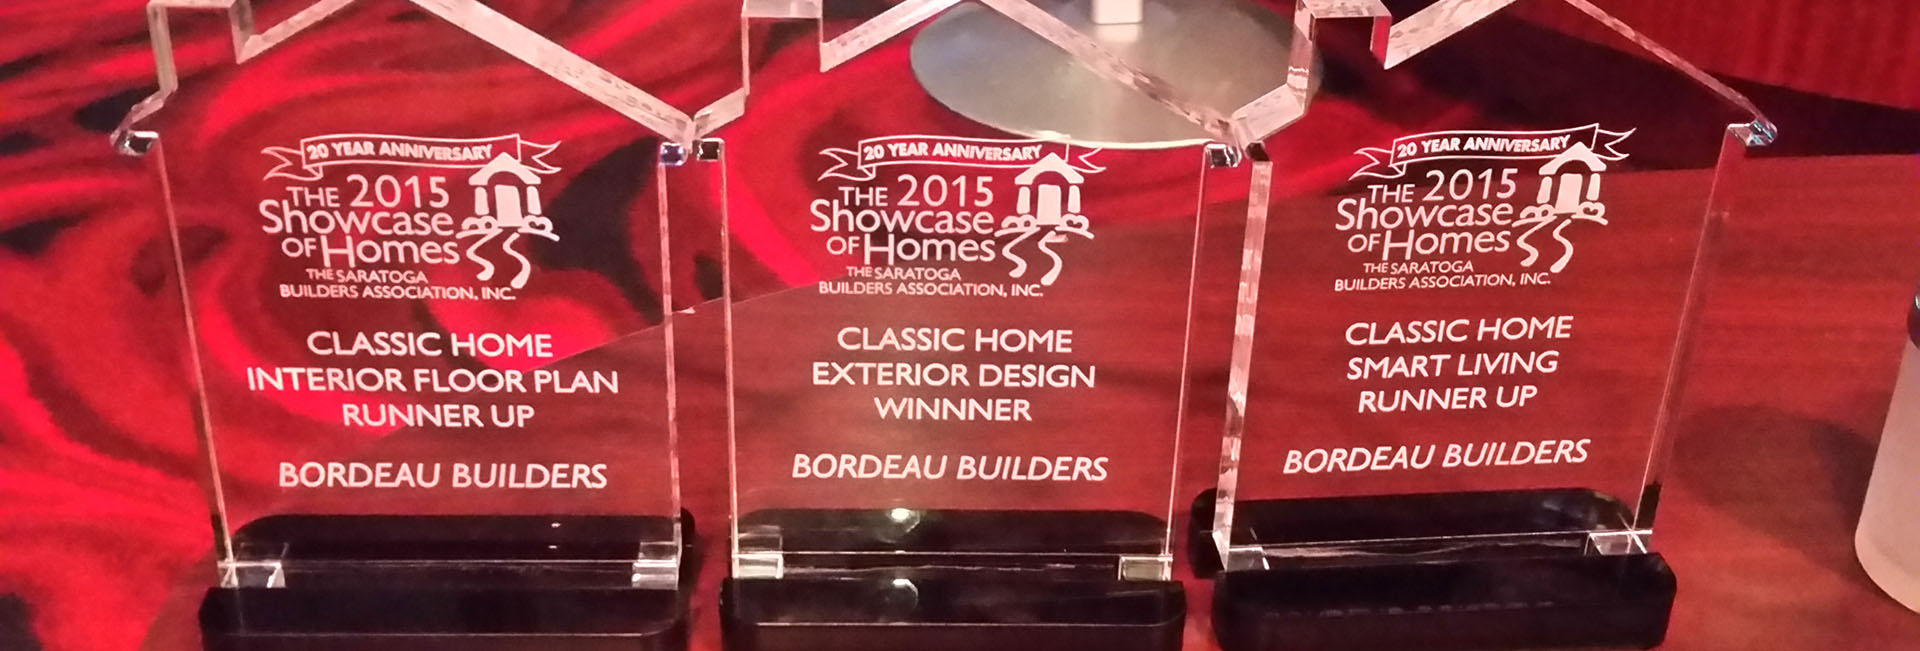 bordeau-showcase